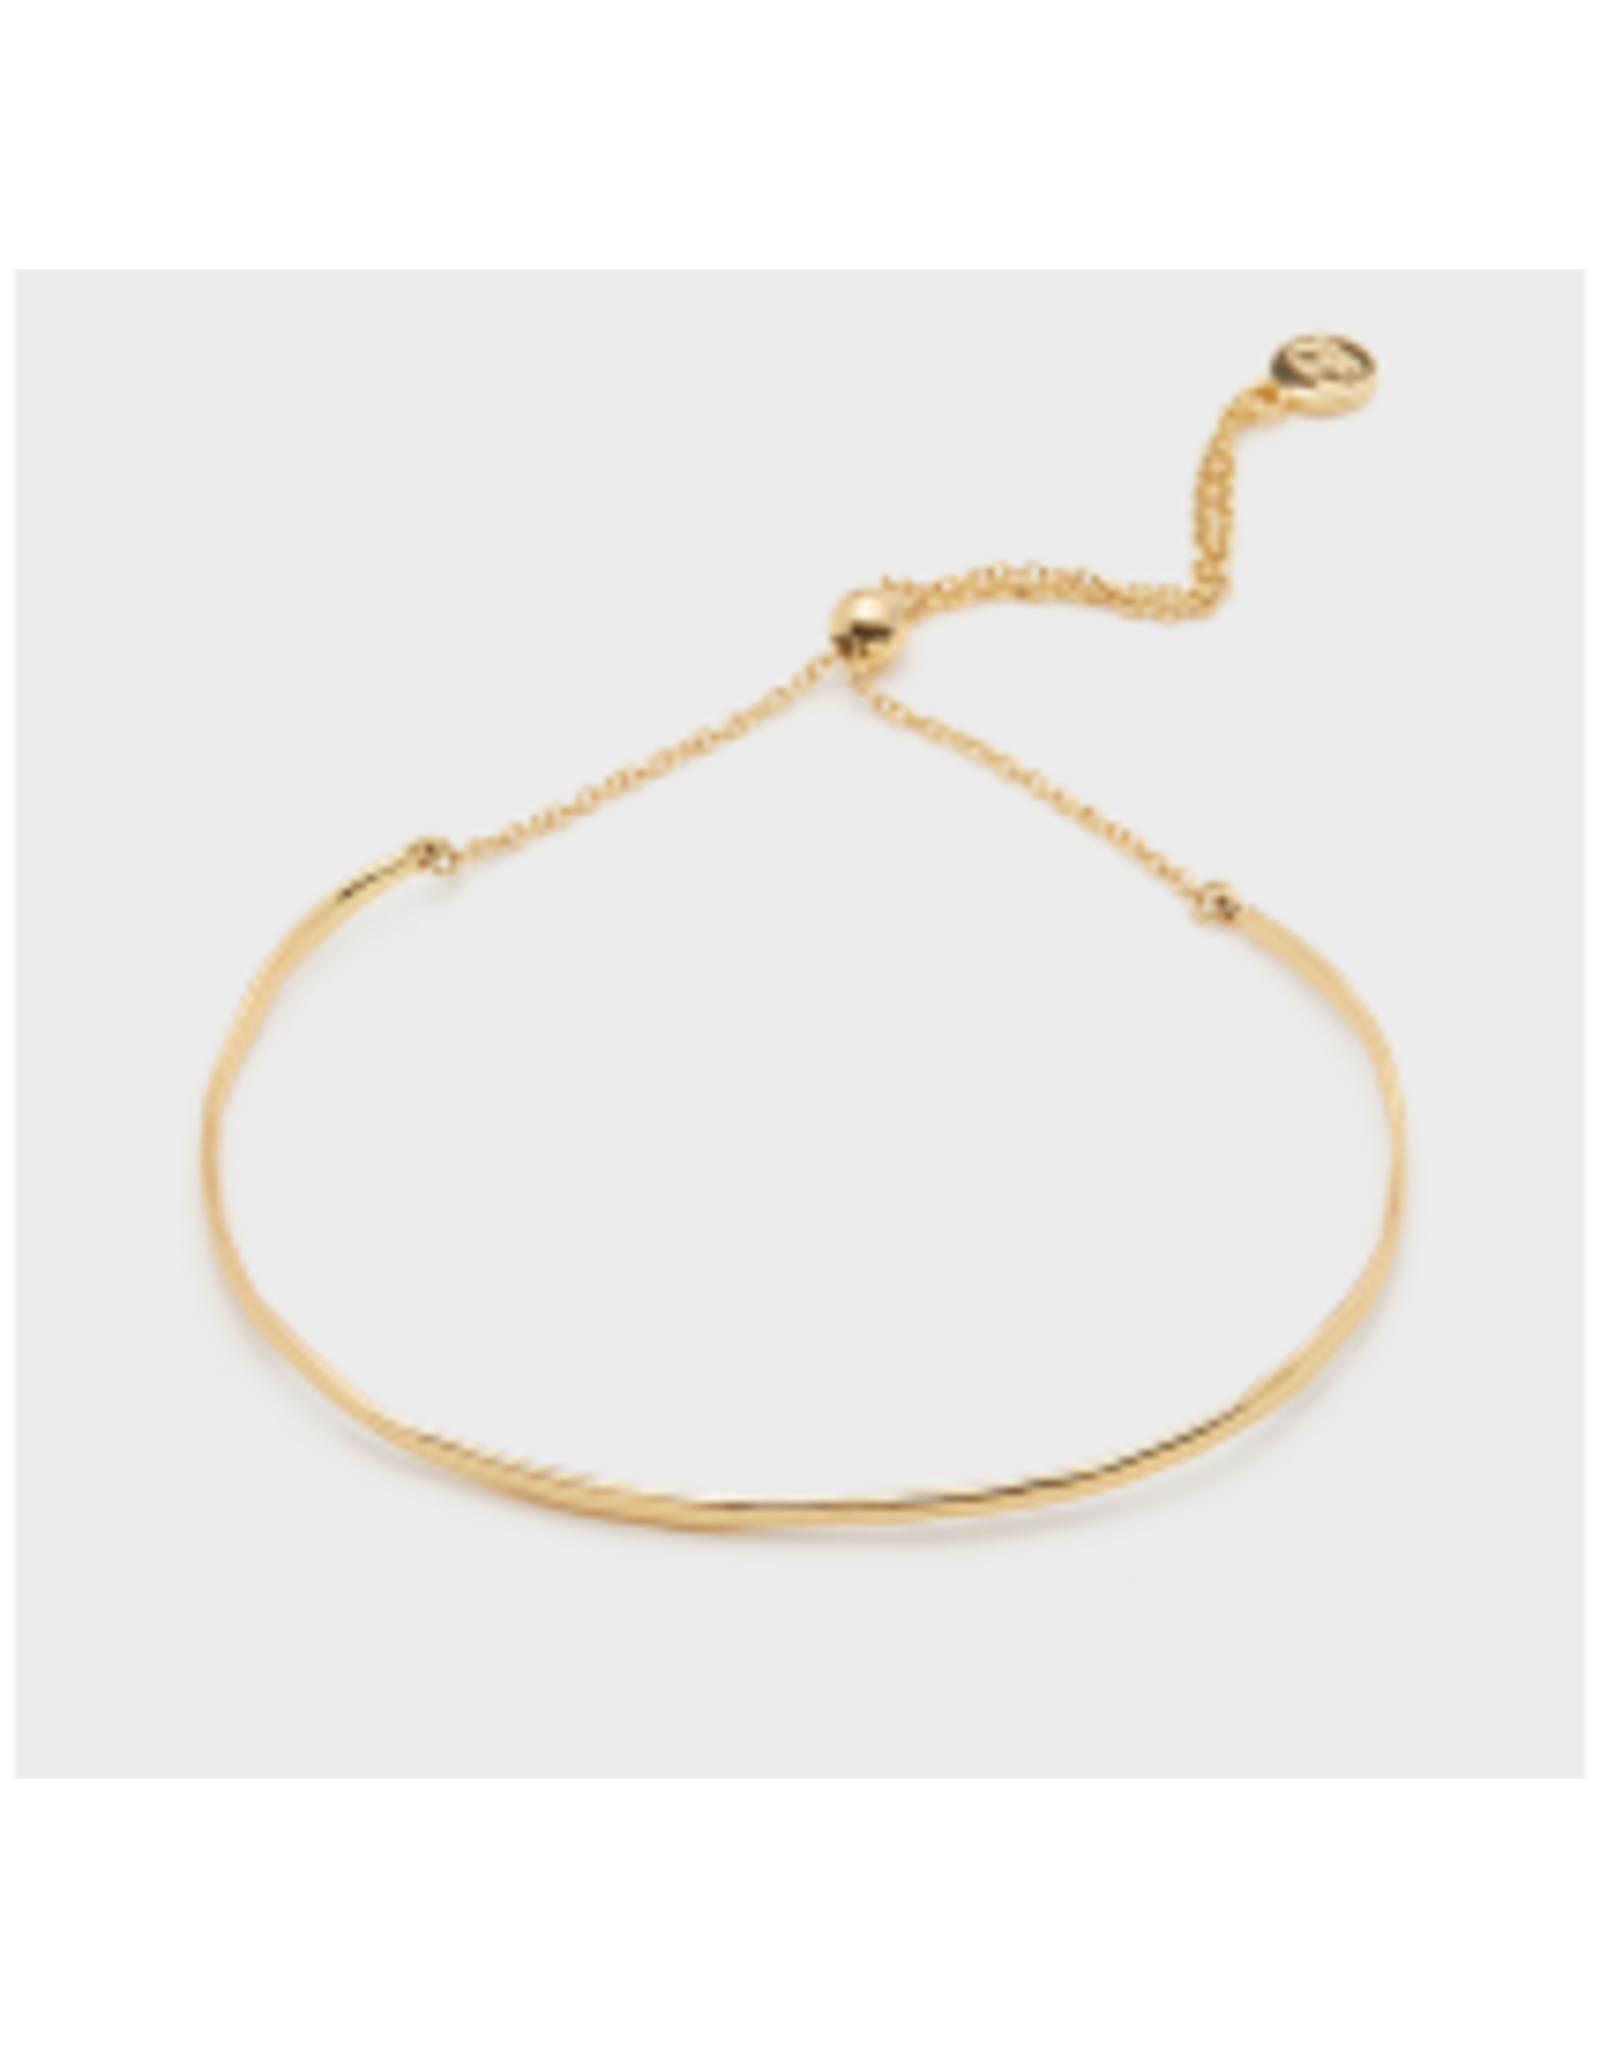 Taner Bar Bracelet in Gold